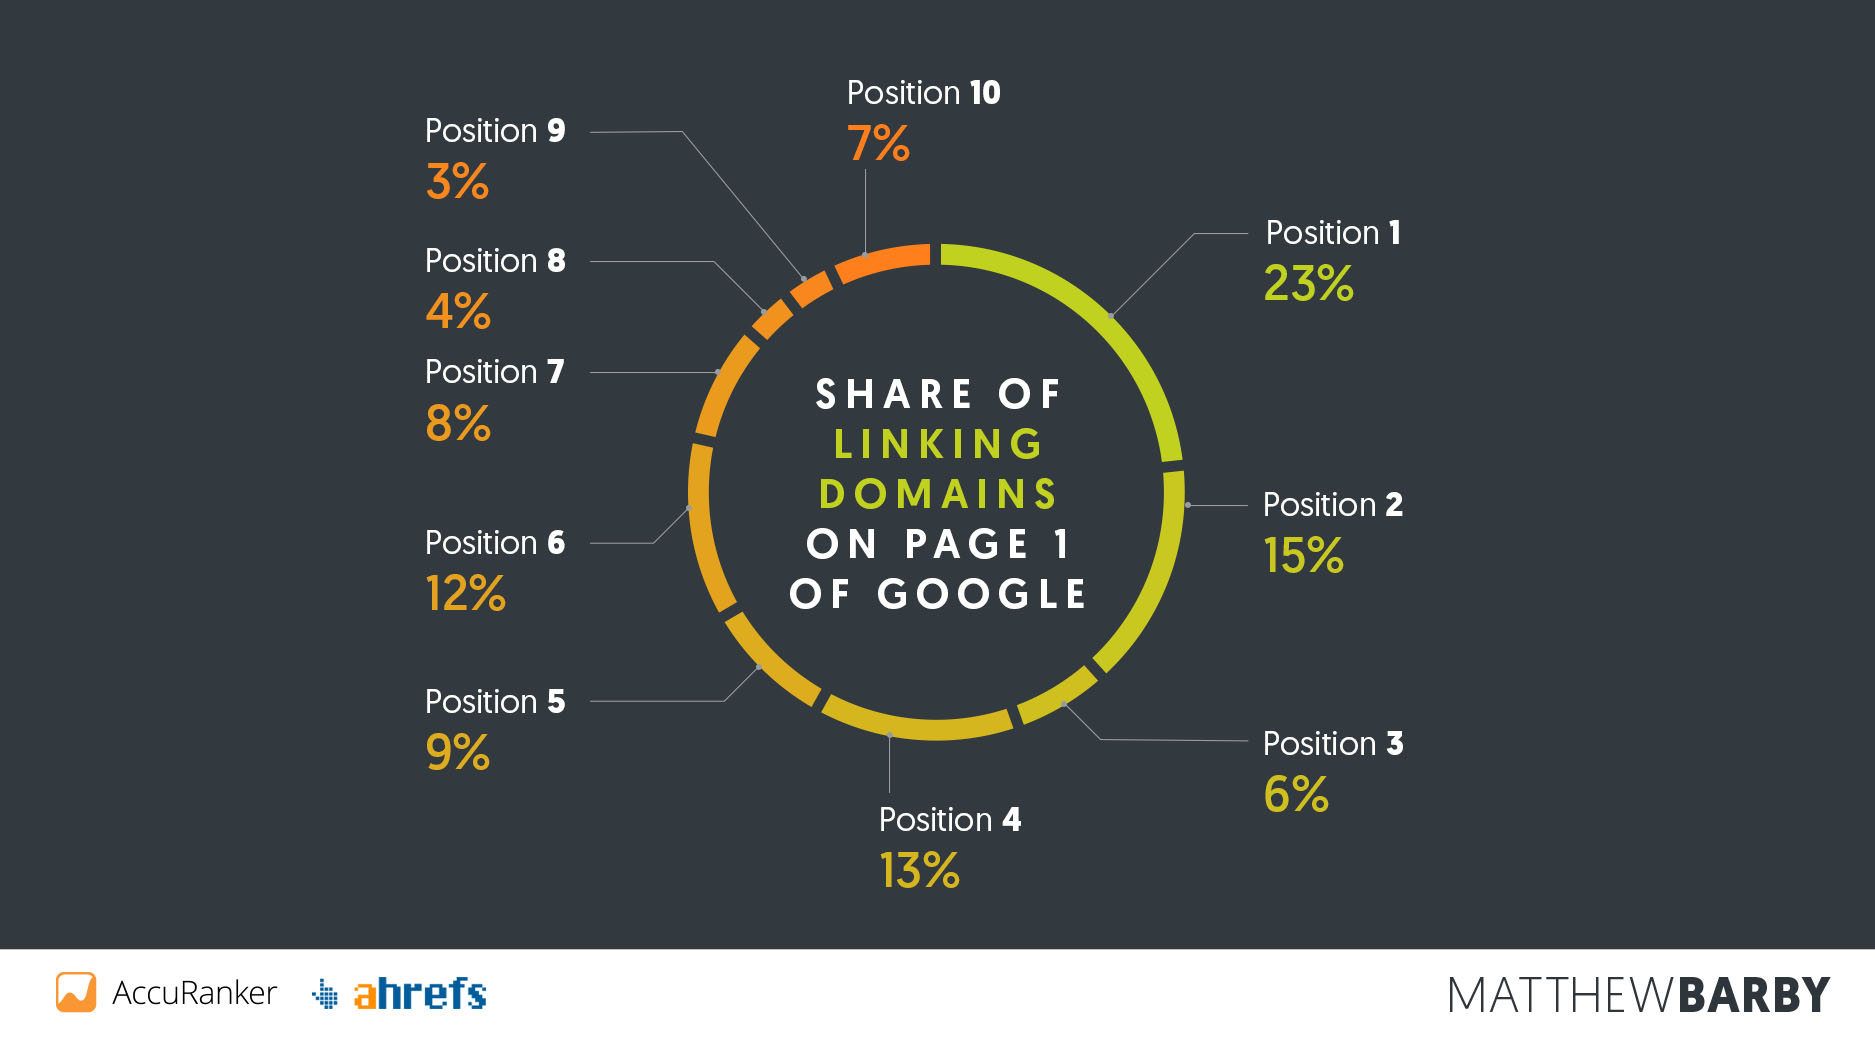 share-of-linking-domains-vs-position